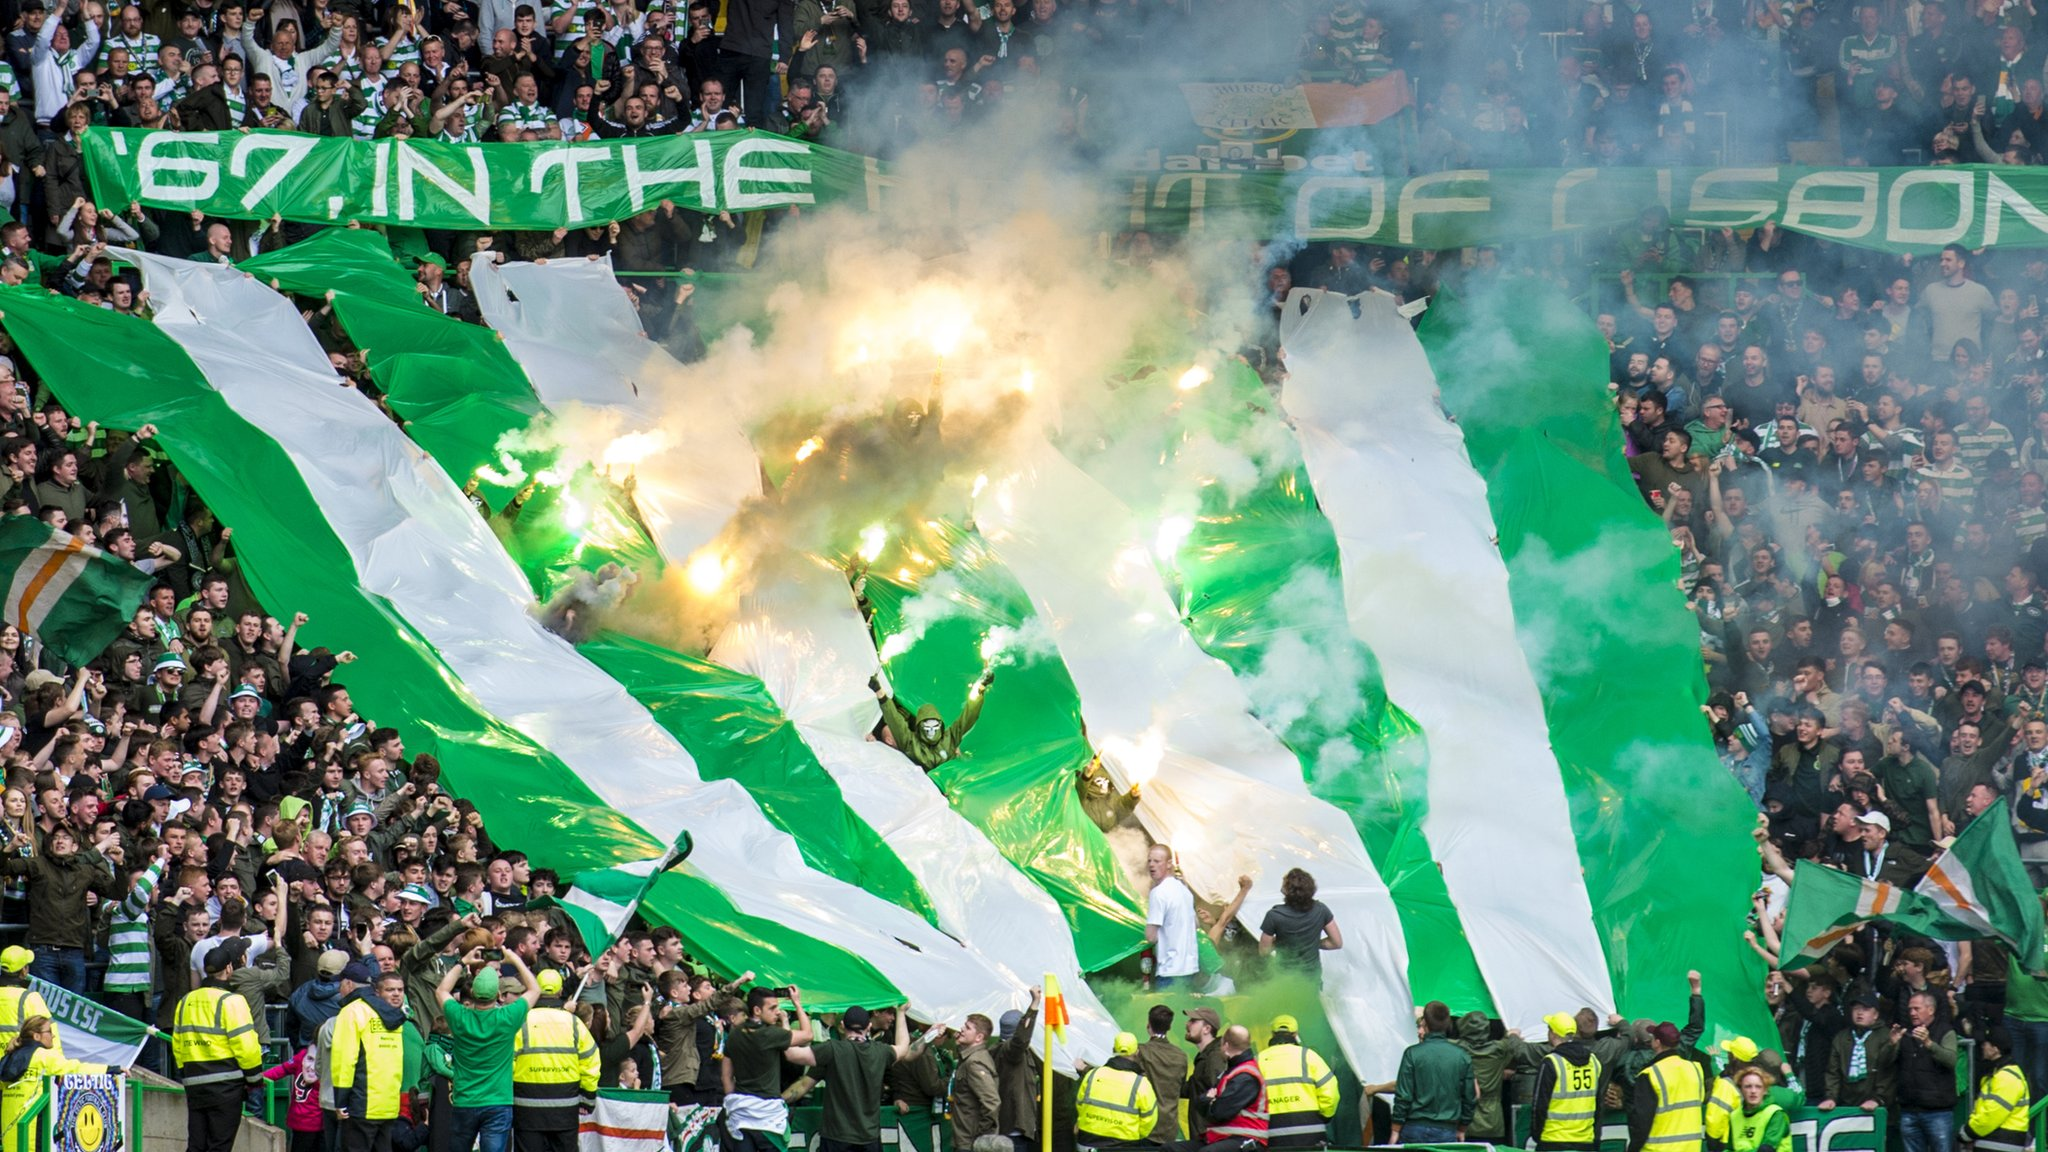 Two-game ban for Celtic's Green Brigade